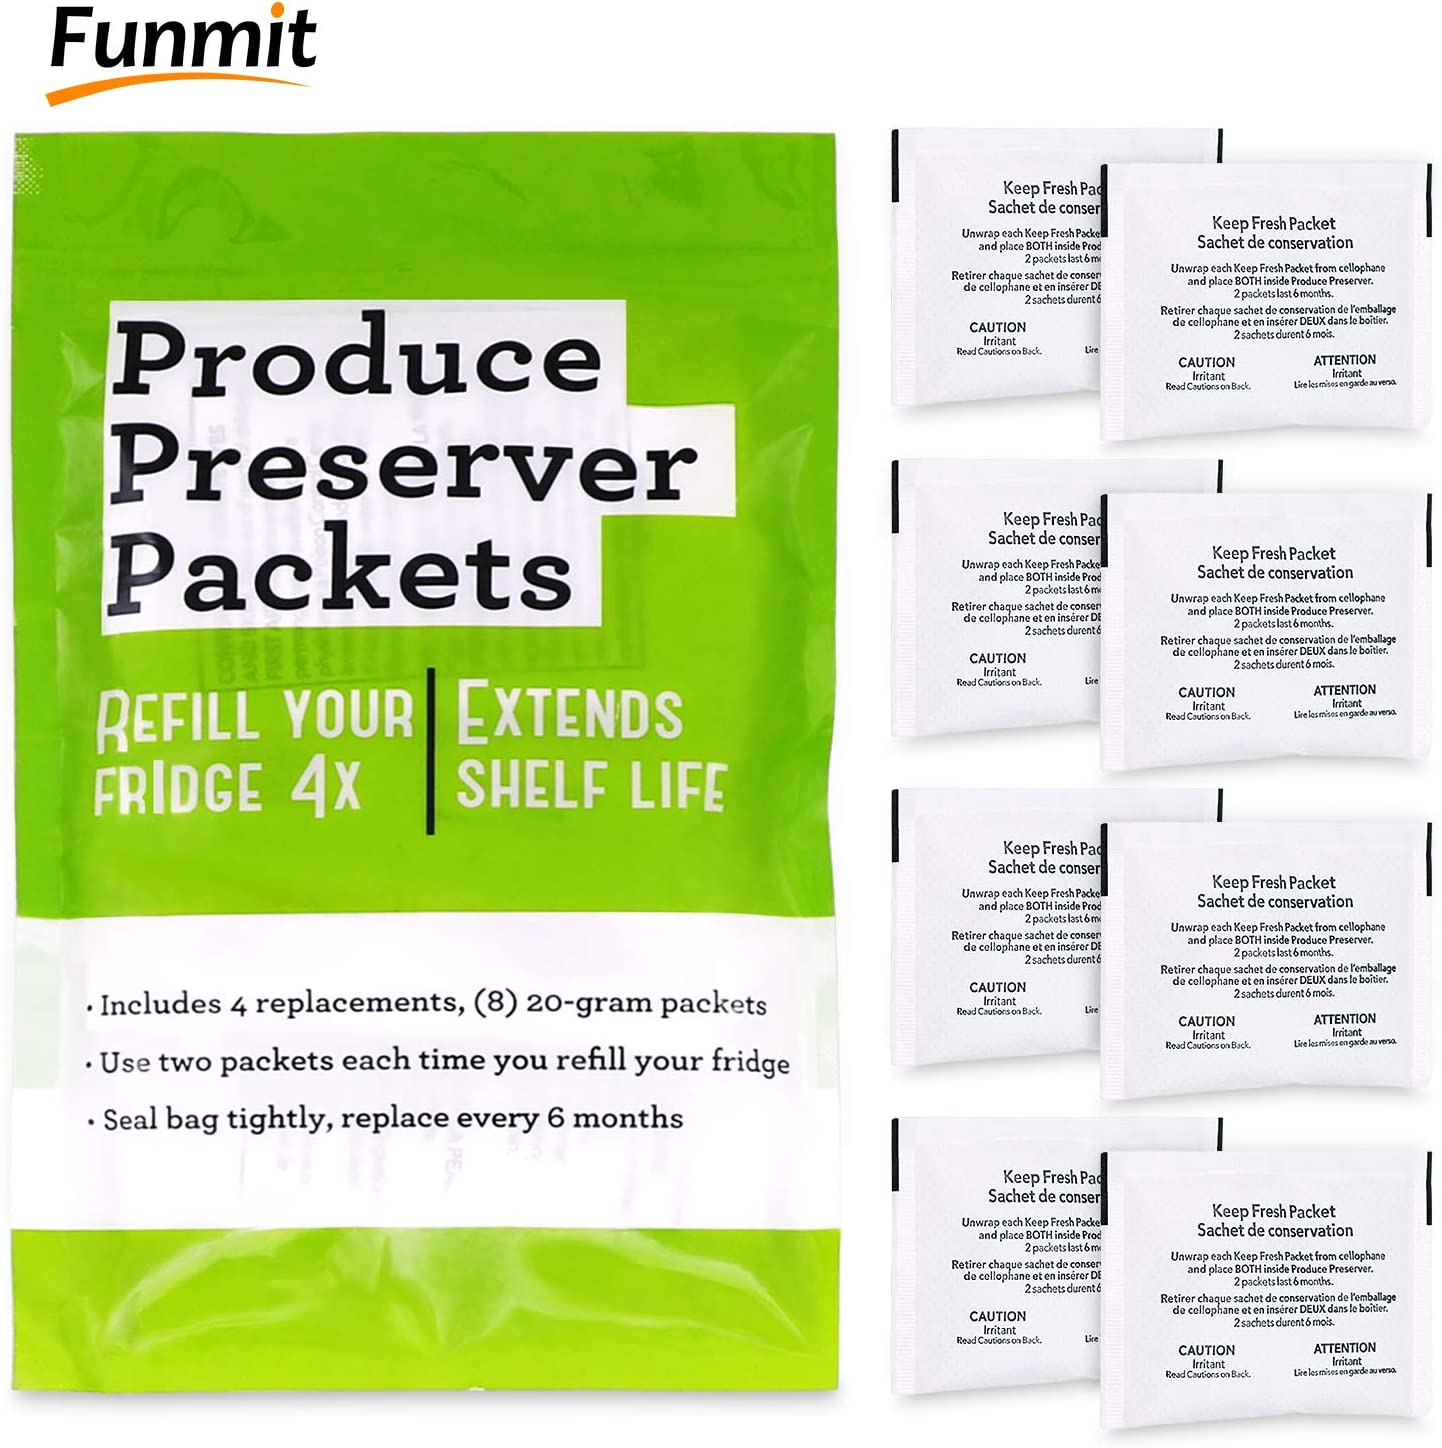 Funmit W10346771A Freshflow Produce Preserver Packets (8 Pouches-4 Pack) Replacement for Whirlpool Refrigerator 2117689,AH3503014,W10335145A